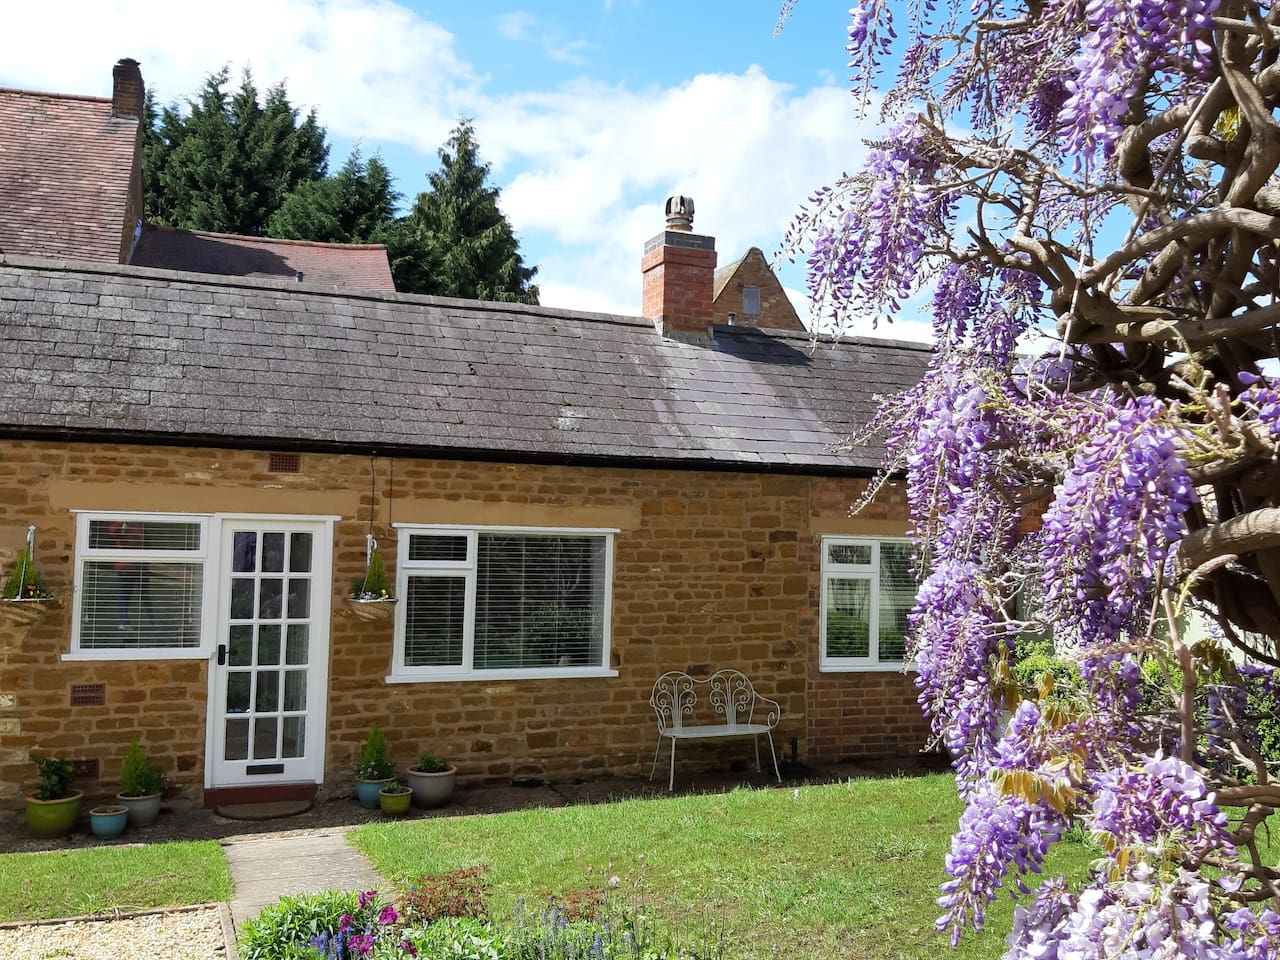 Granary Cottage in the sunshine.